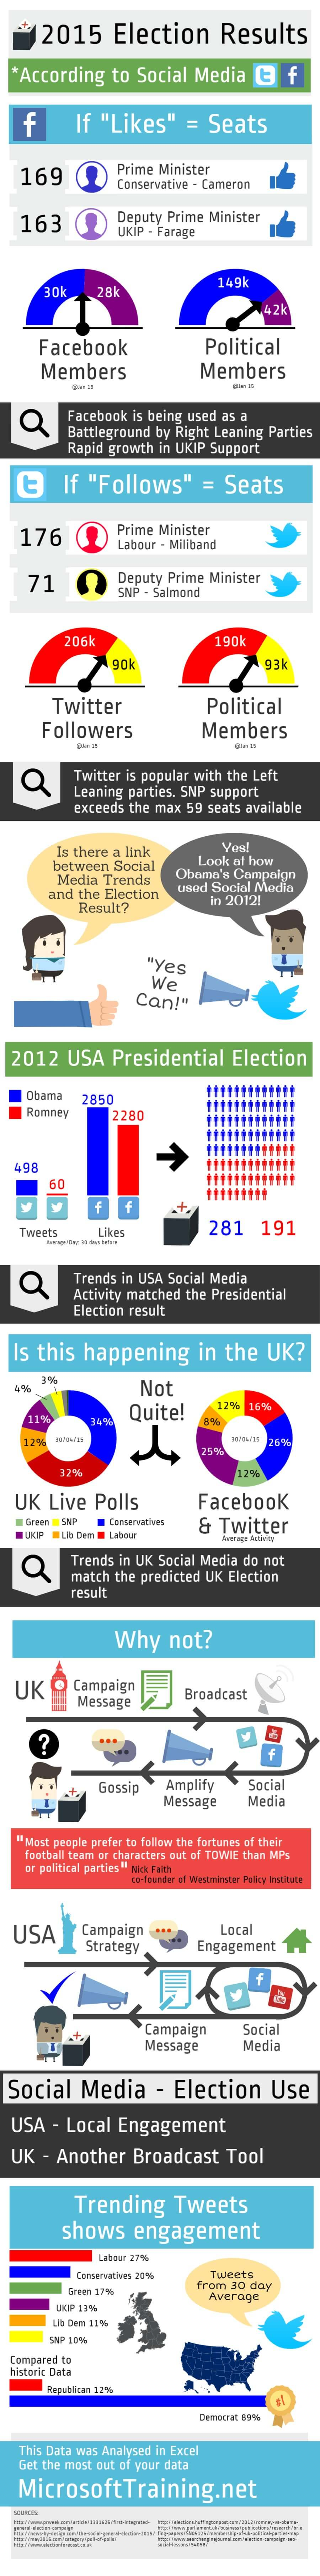 2015 UK Election Results According to Social Media